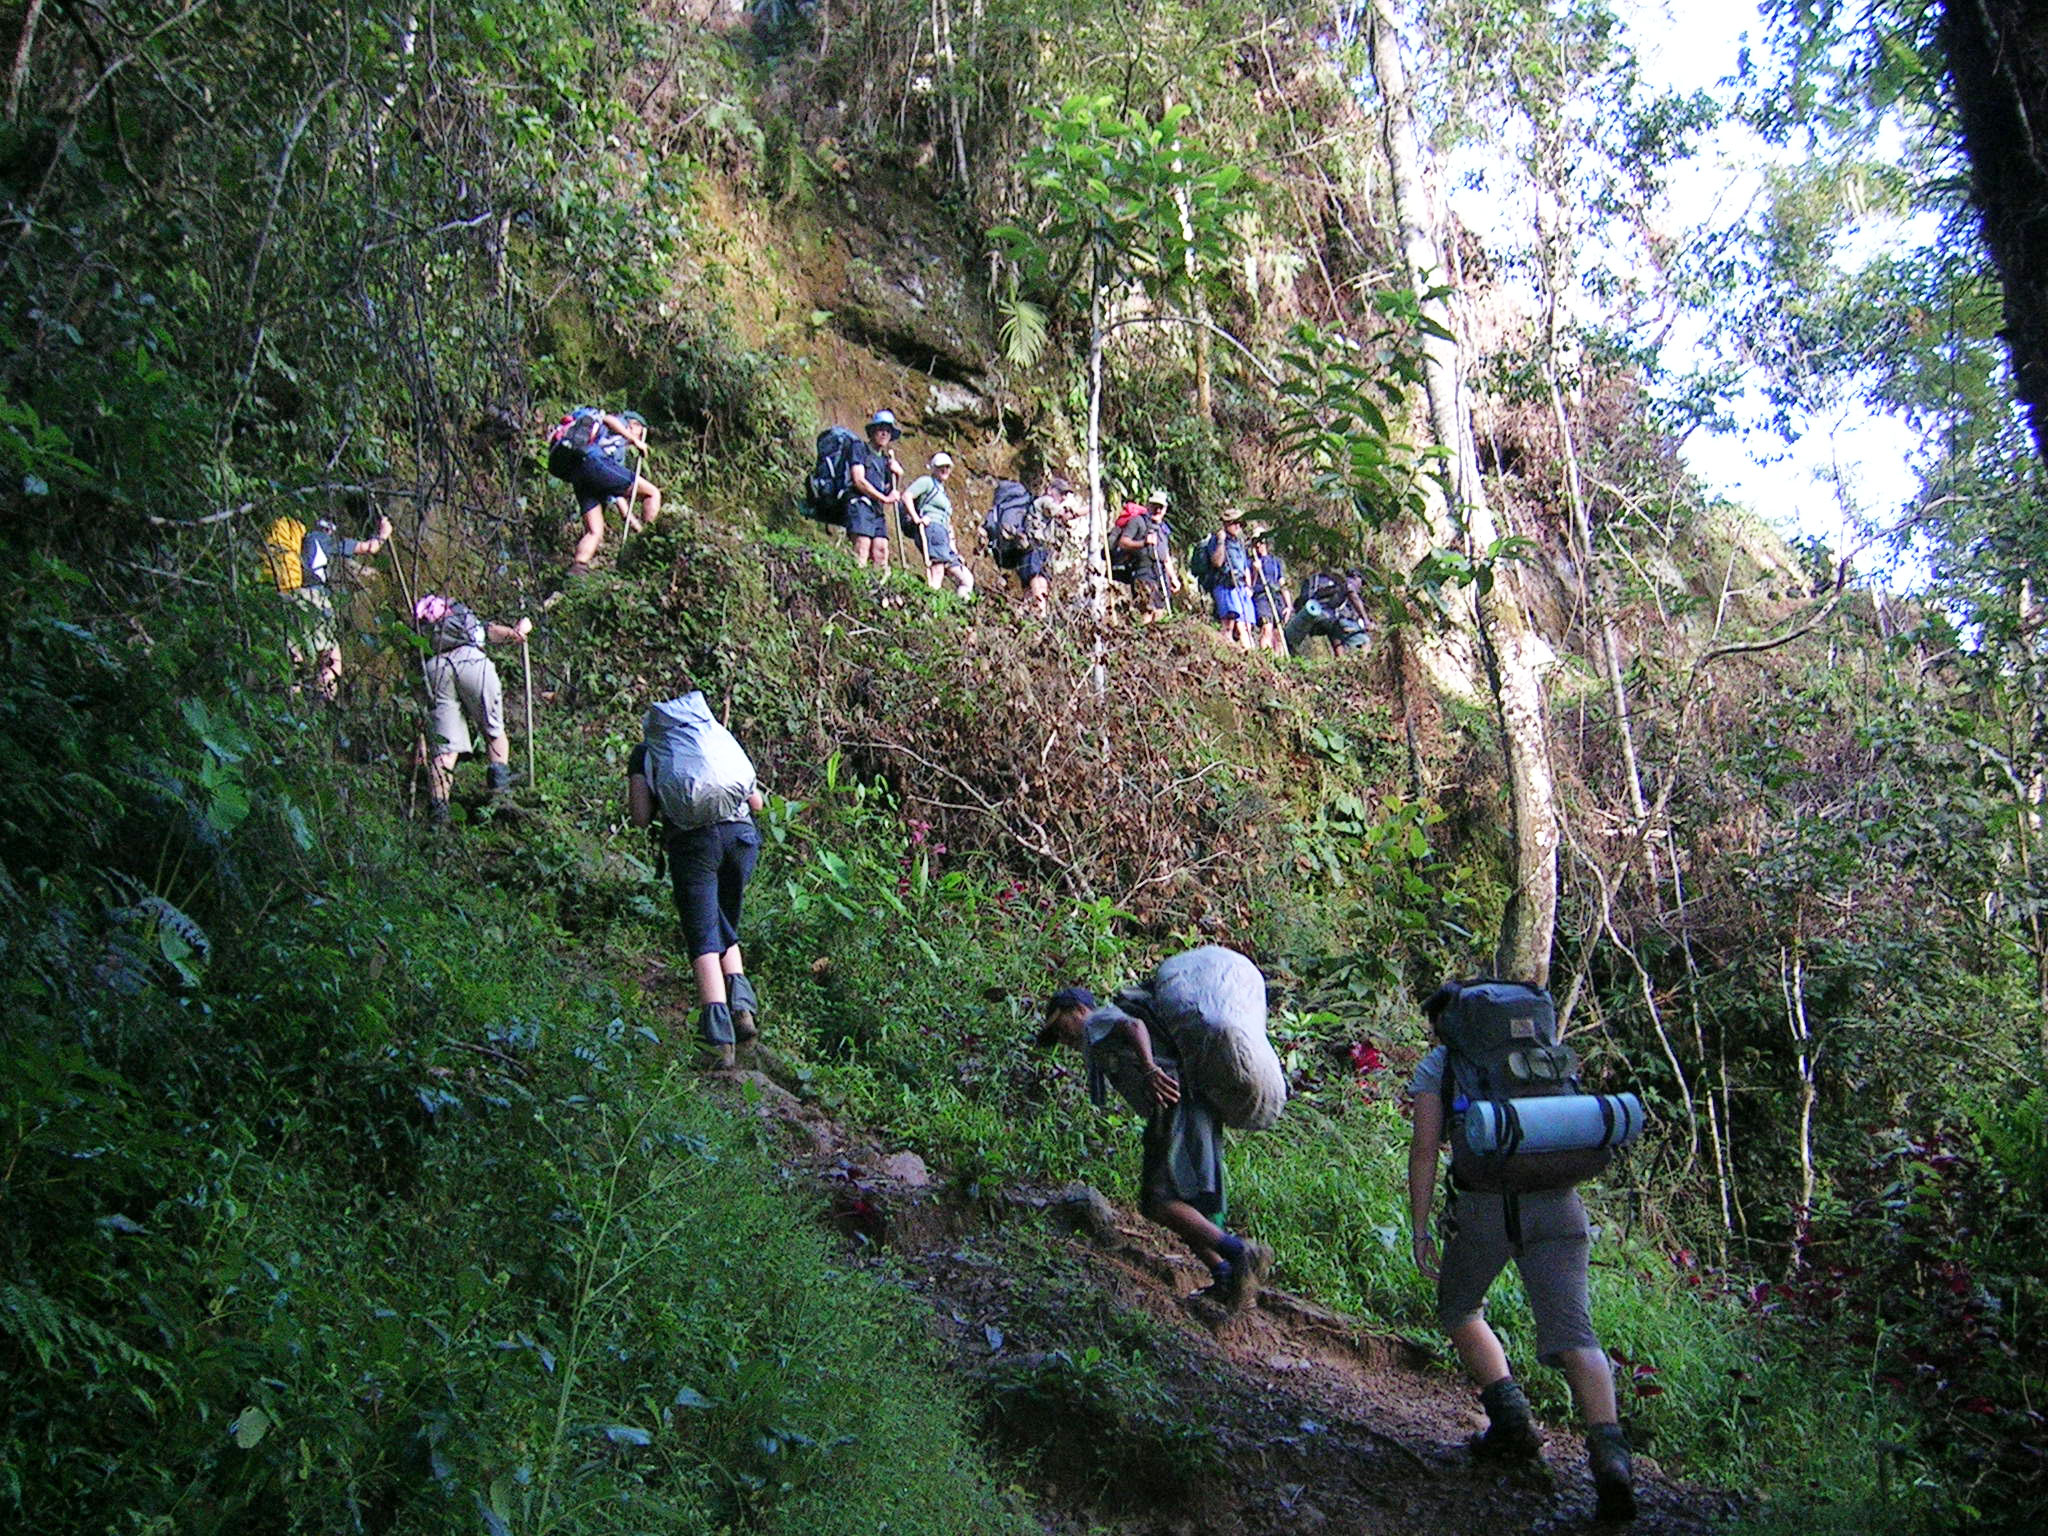 Trekkers heading up a steep and challenging escarpment